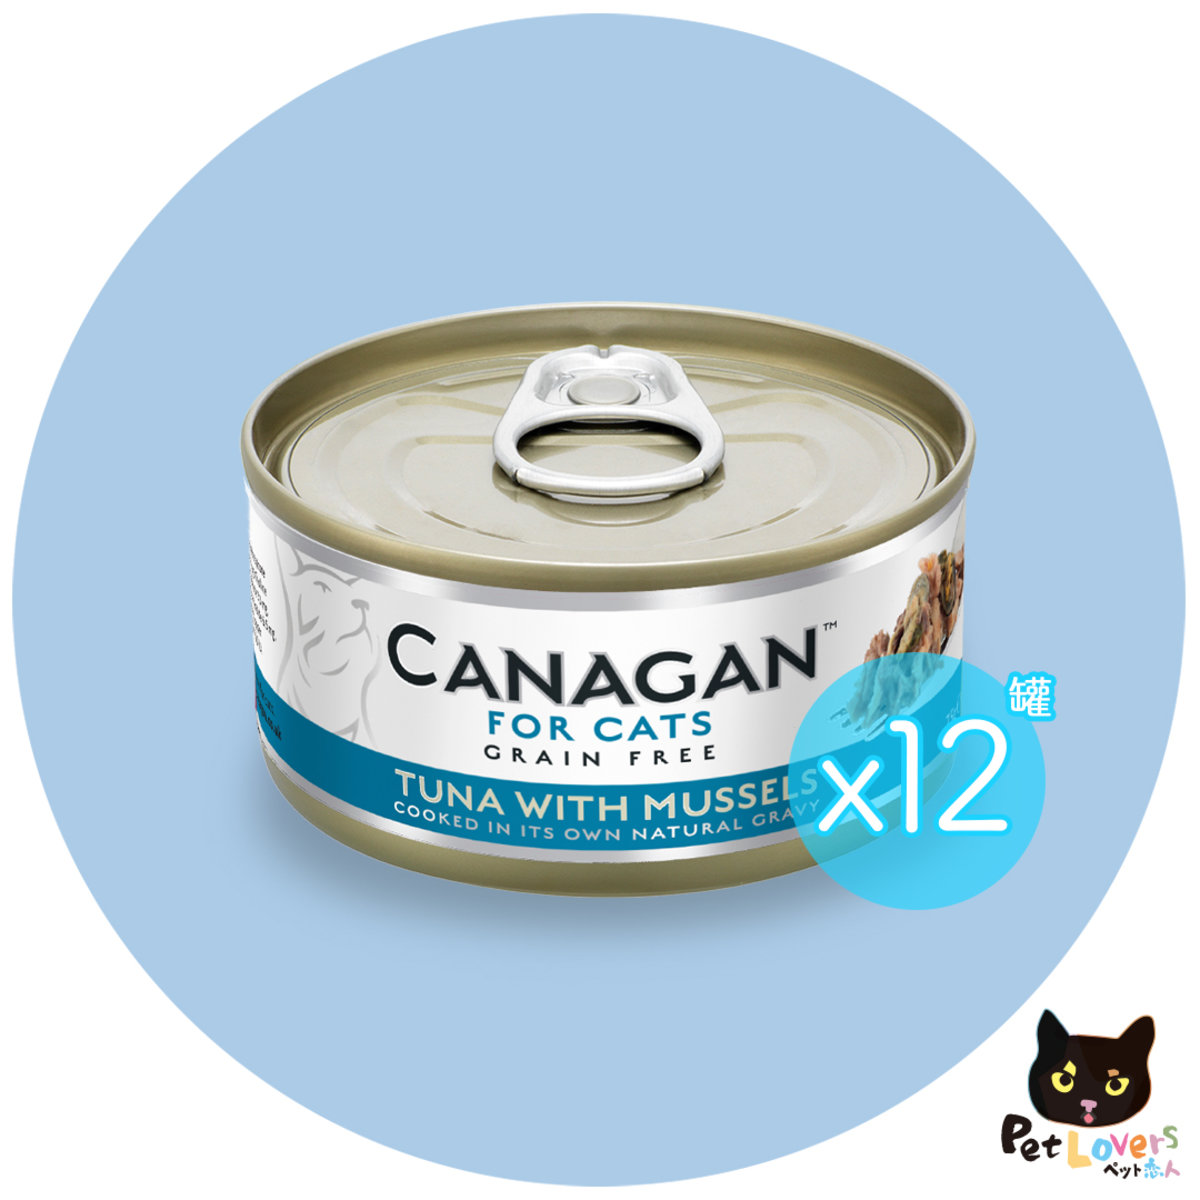 Tuna with Mussels Grain-free Wet food